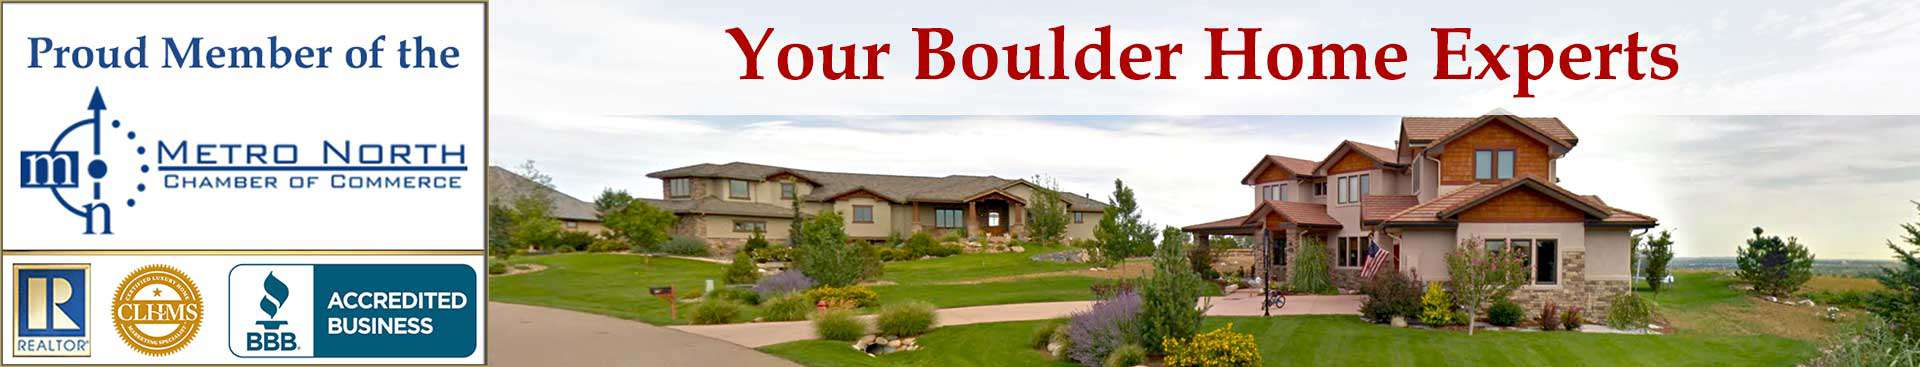 Boulder Colorado Accreditations Banner